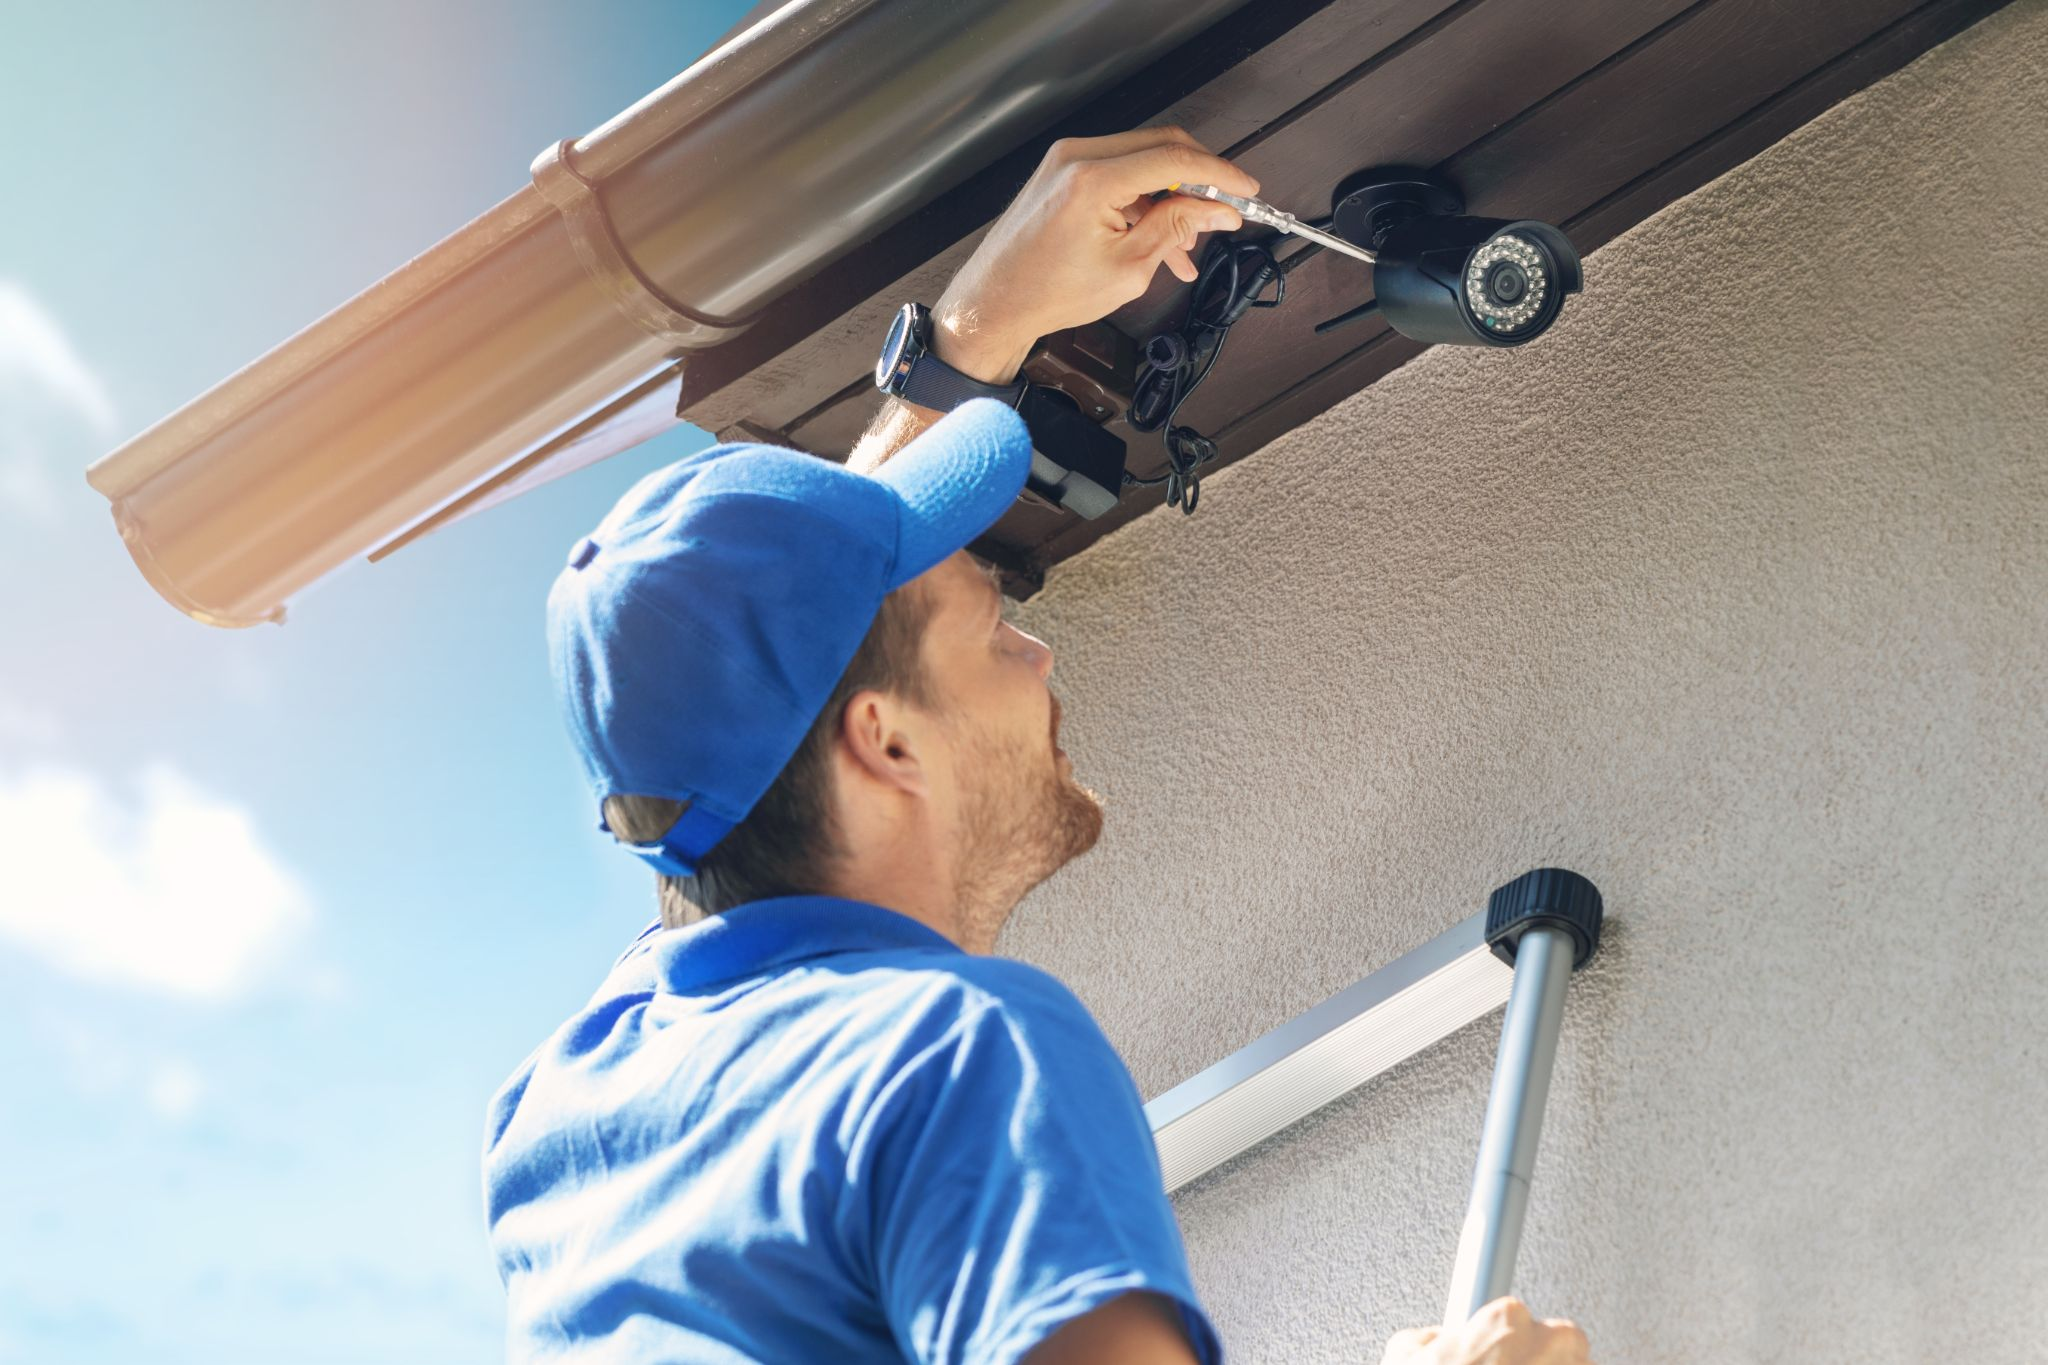 man install outdoor surveillance camera for home security